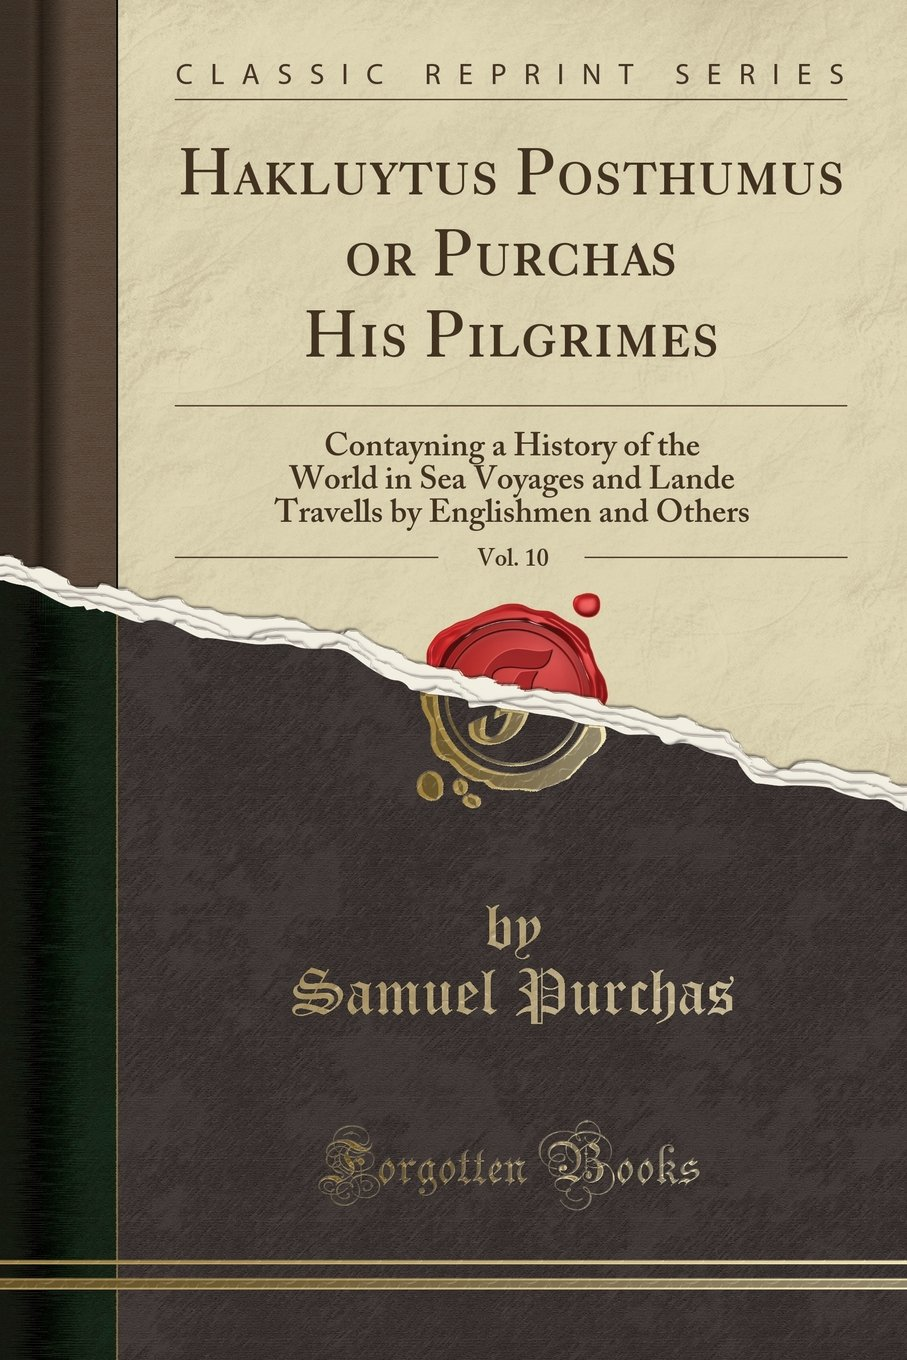 Read Online Hakluytus Posthumus or Purchas His Pilgrimes, Vol. 10: Contayning a History of the World in Sea Voyages and Lande Travells by Englishmen and Others (Classic Reprint) PDF